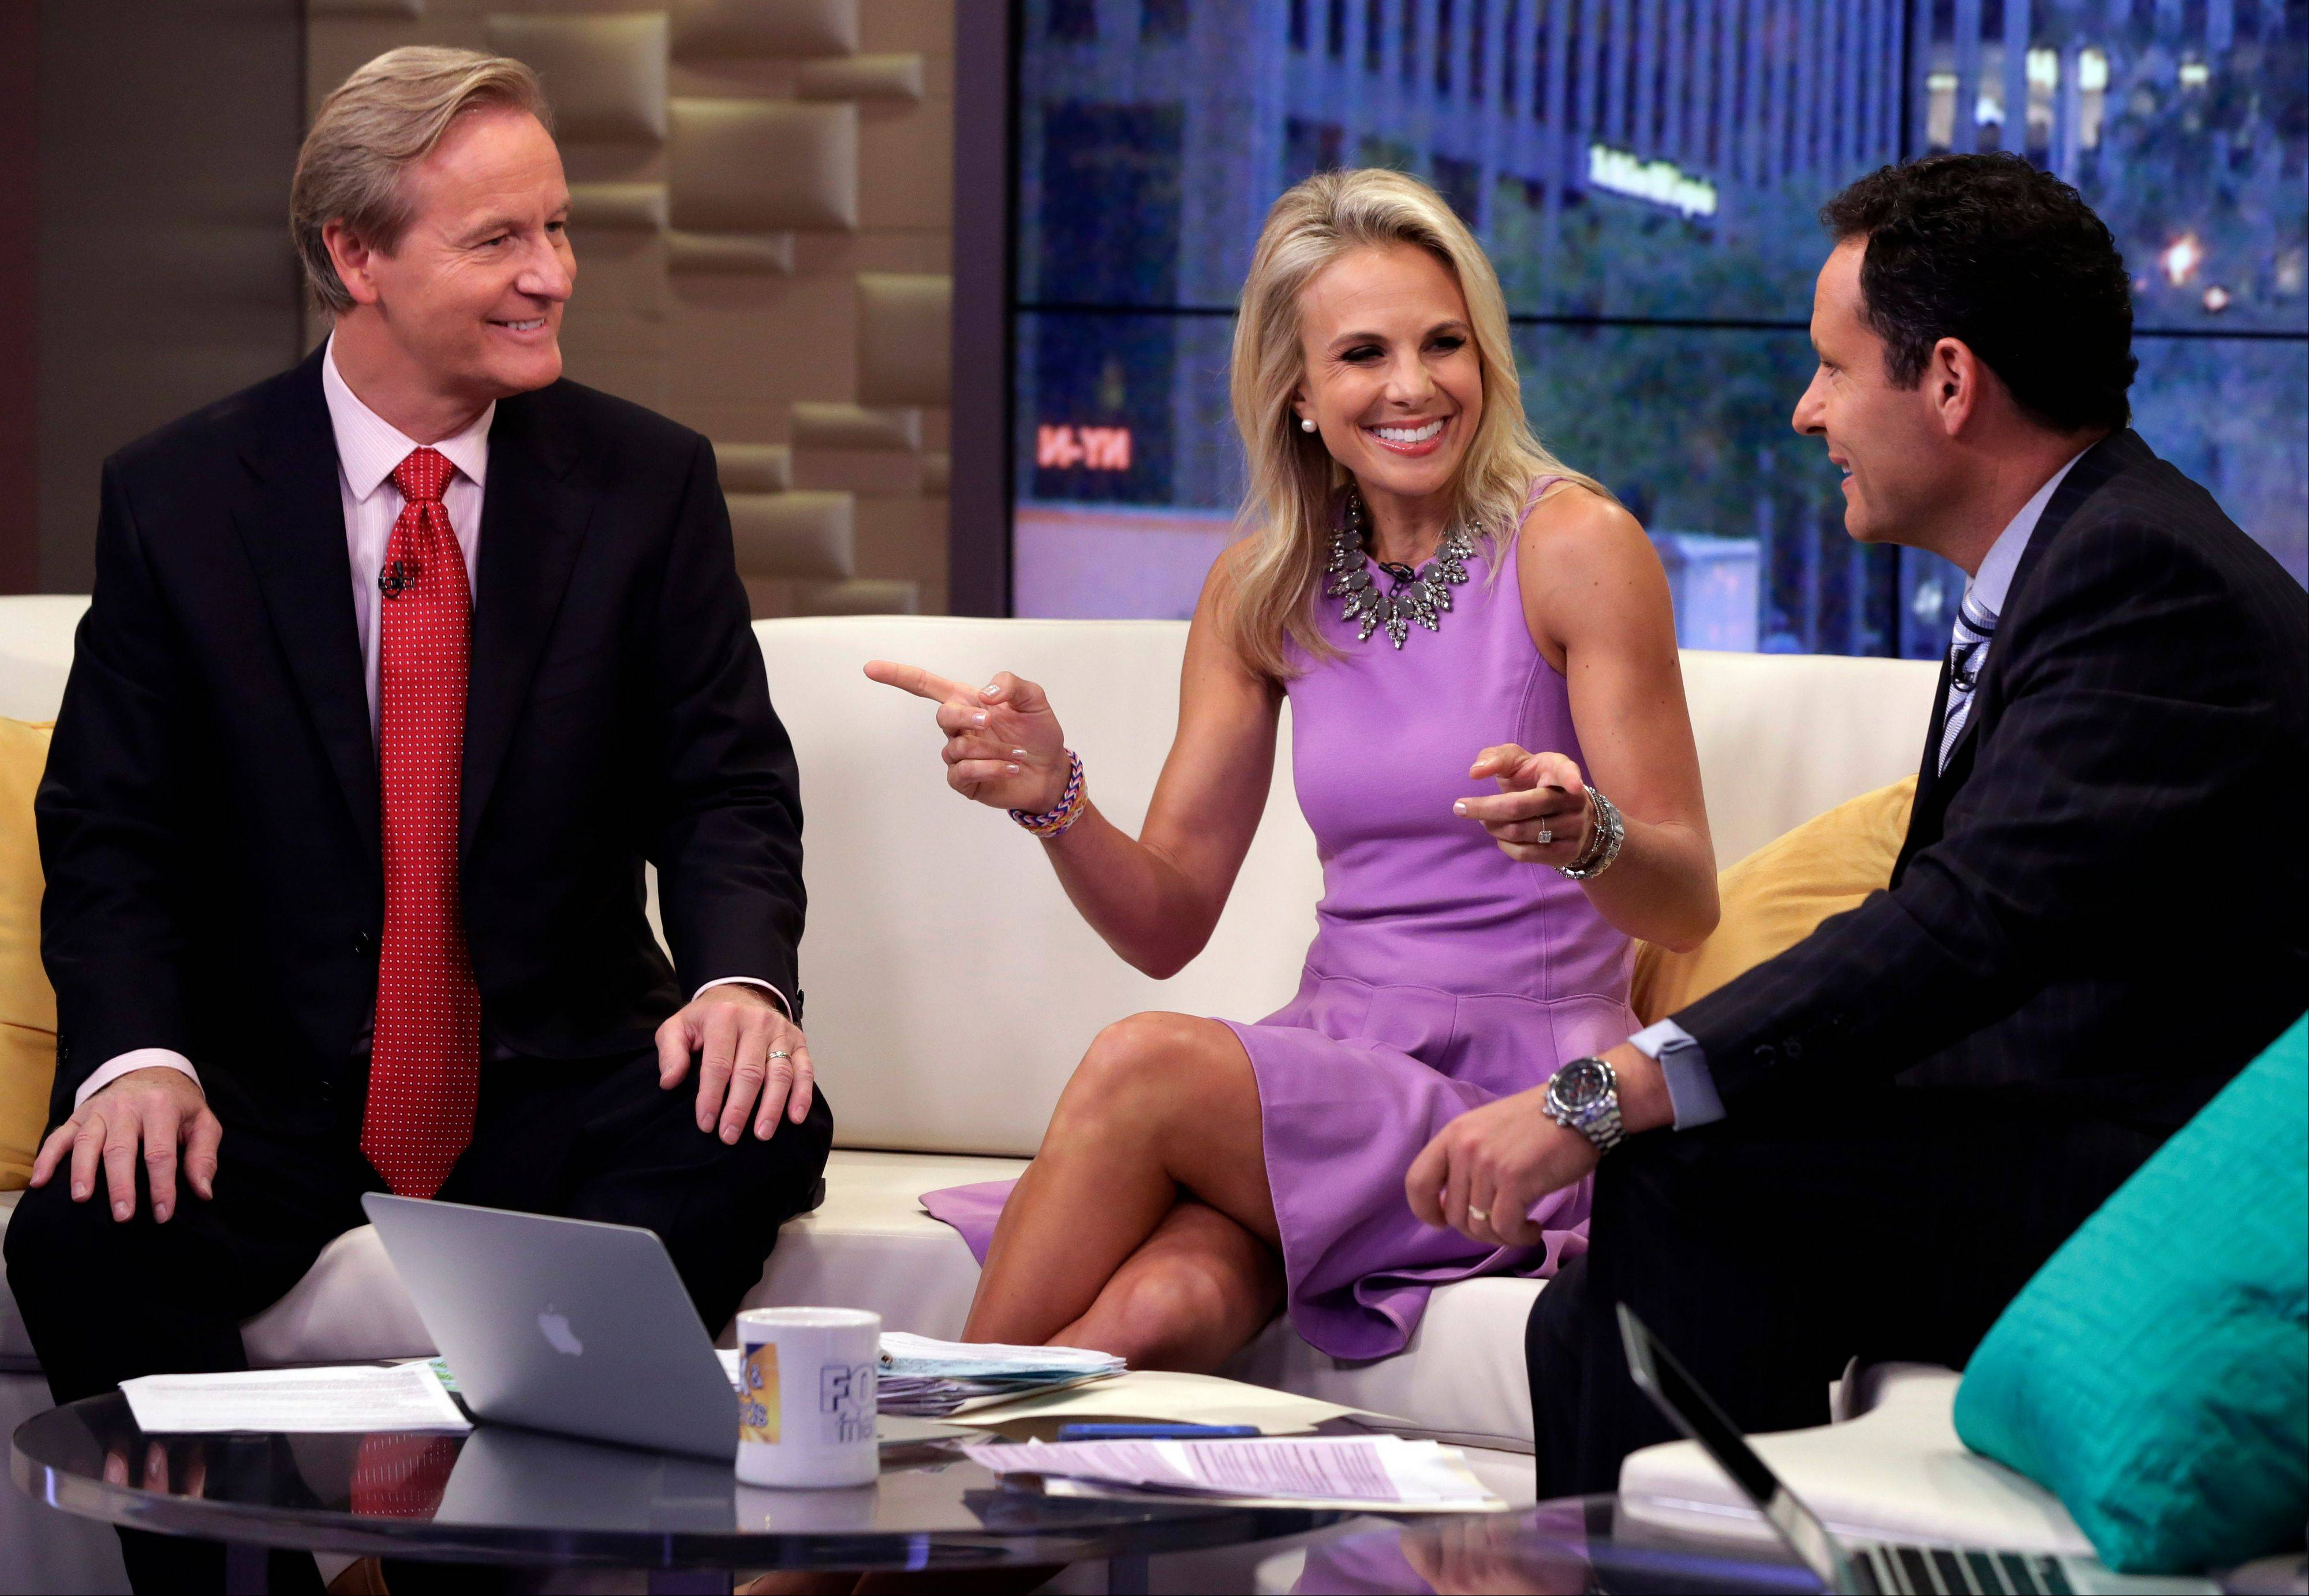 Elisabeth Hasselbeck appears with co-hosts Steve Doocy, left, and Brian Kilmeade in her debut on the �Fox & Friends� television program Monday. The former cast member of �The View� replaced Gretchen Carlson.